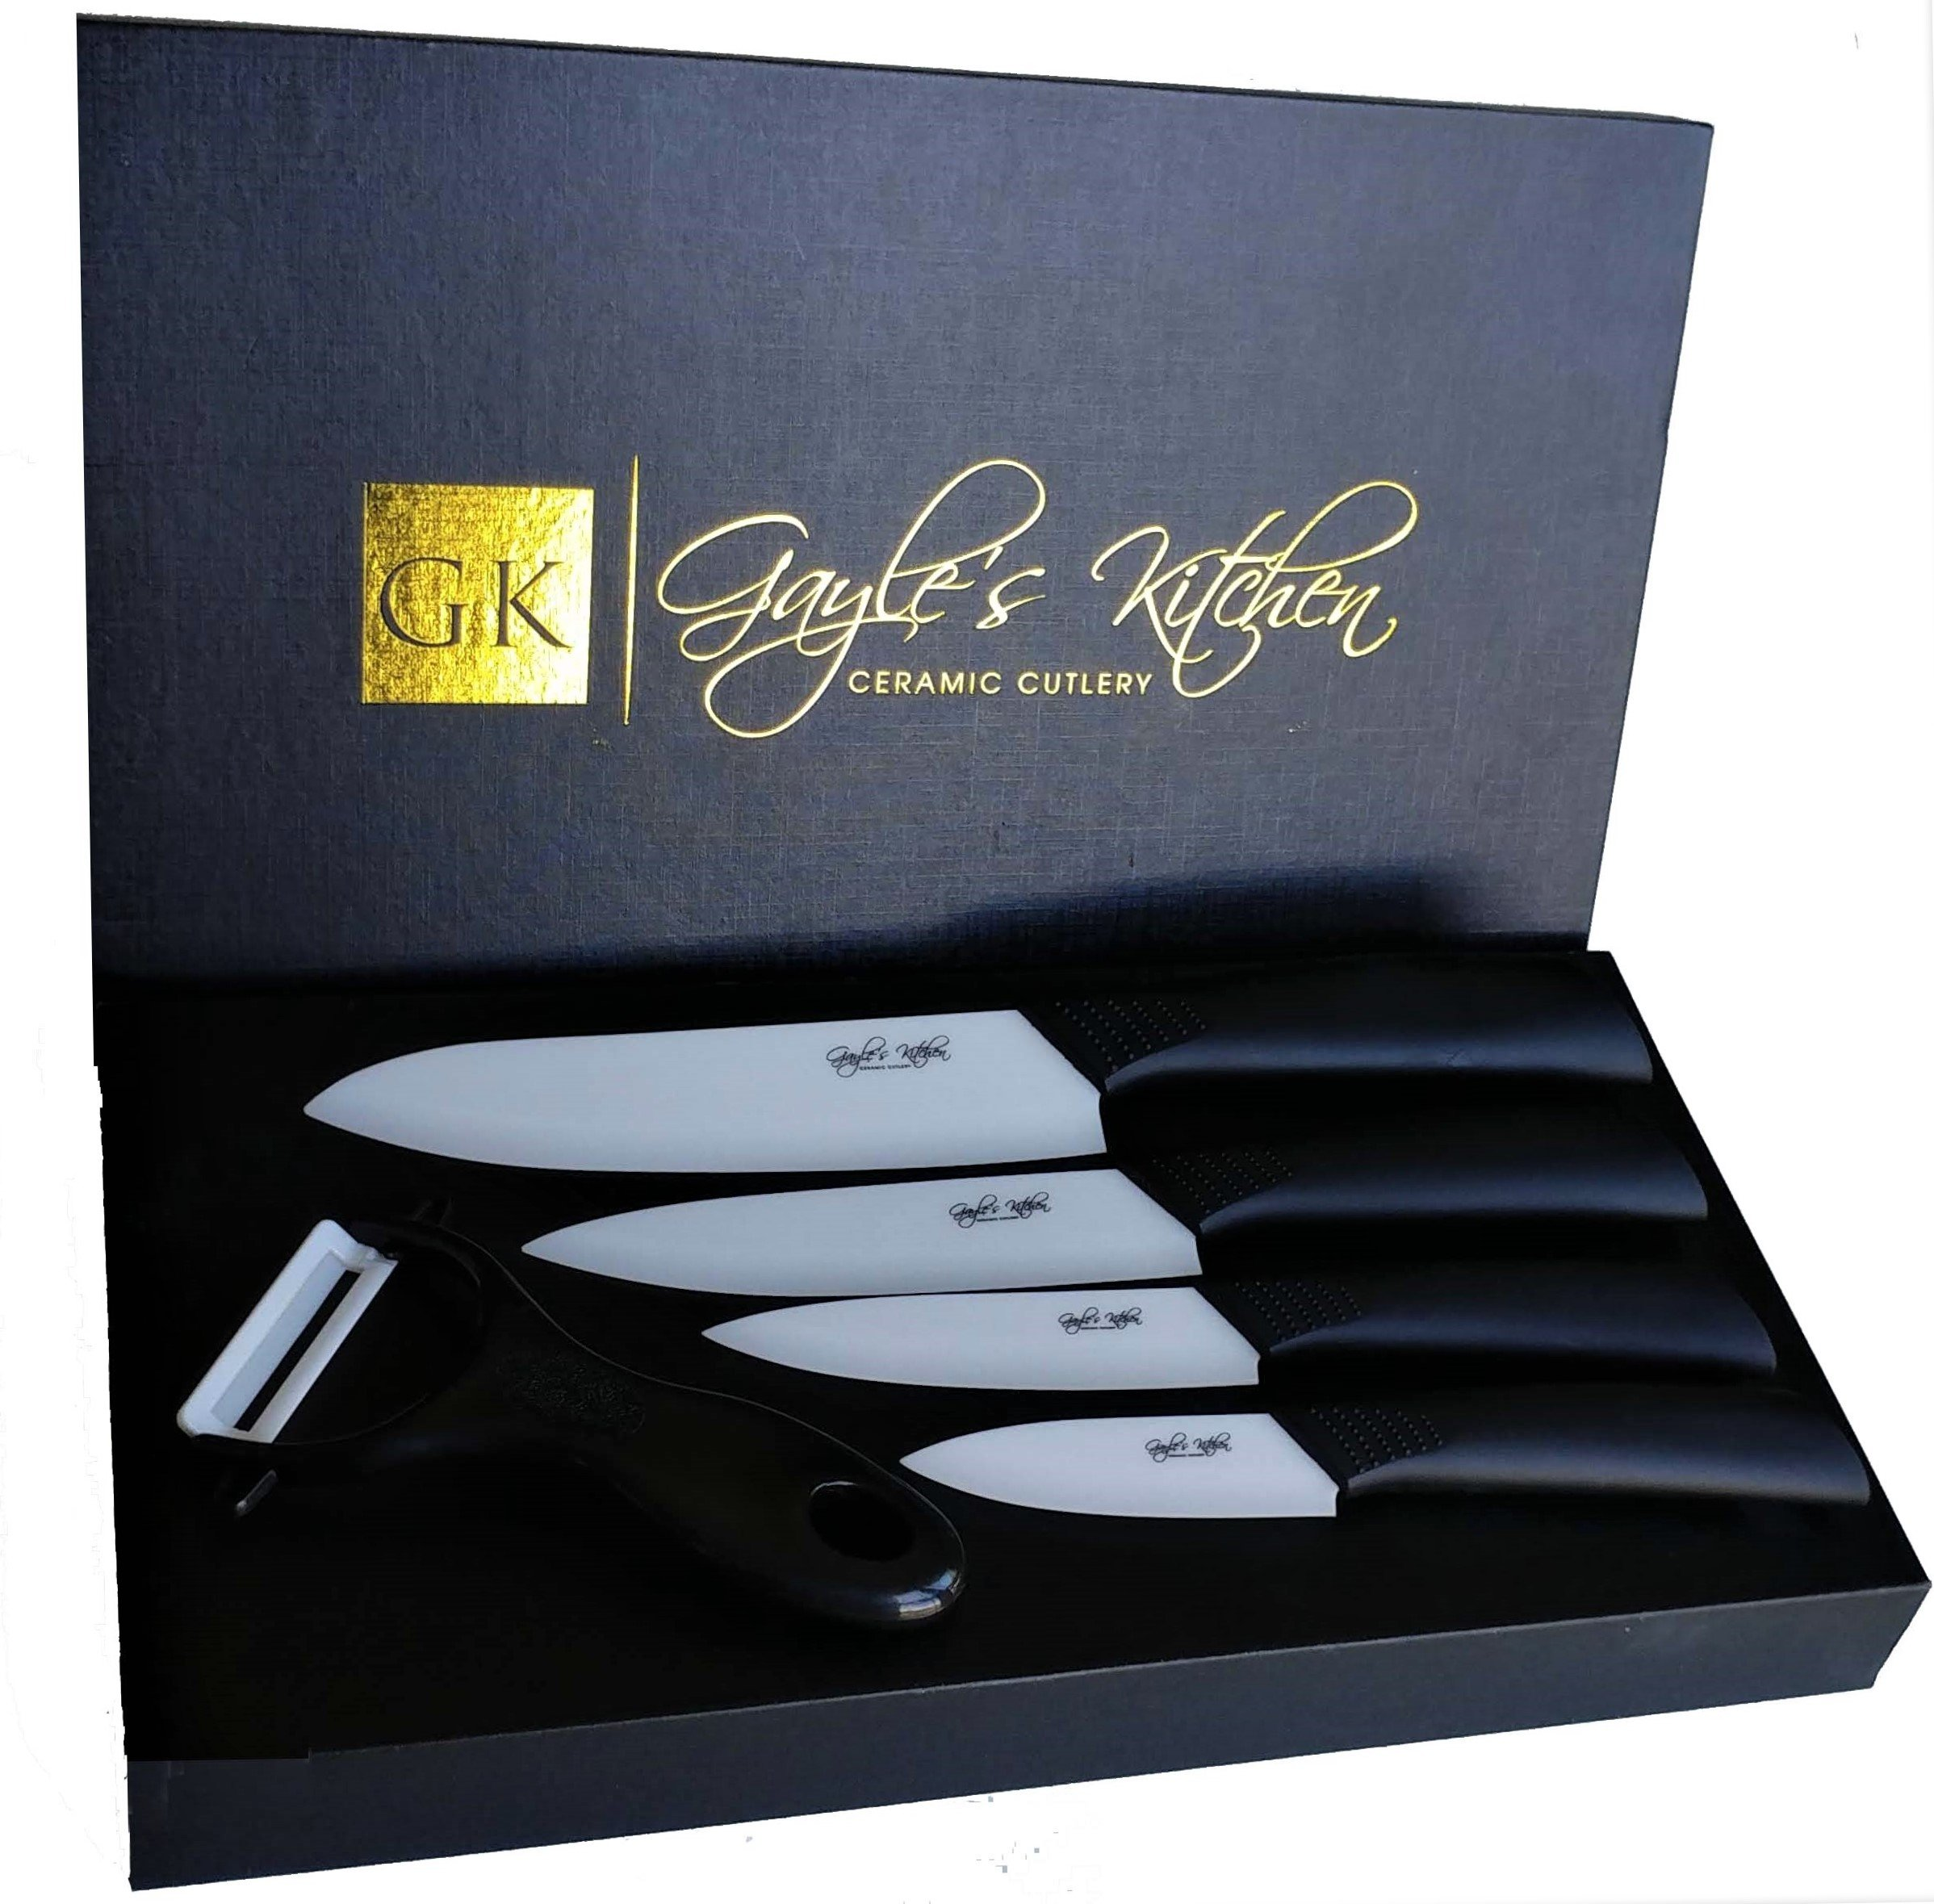 "Ceramic Knife Set - 5 Pieces - Chefs Knife Set - Includes 3"", 4"", 5'', 6"" Ceramic Knives and a Matching Veggie Peeler - Elegant Magnetic Closing Box - Ceramic Kitchen Knives Box Set by Gayle's Kitchen"